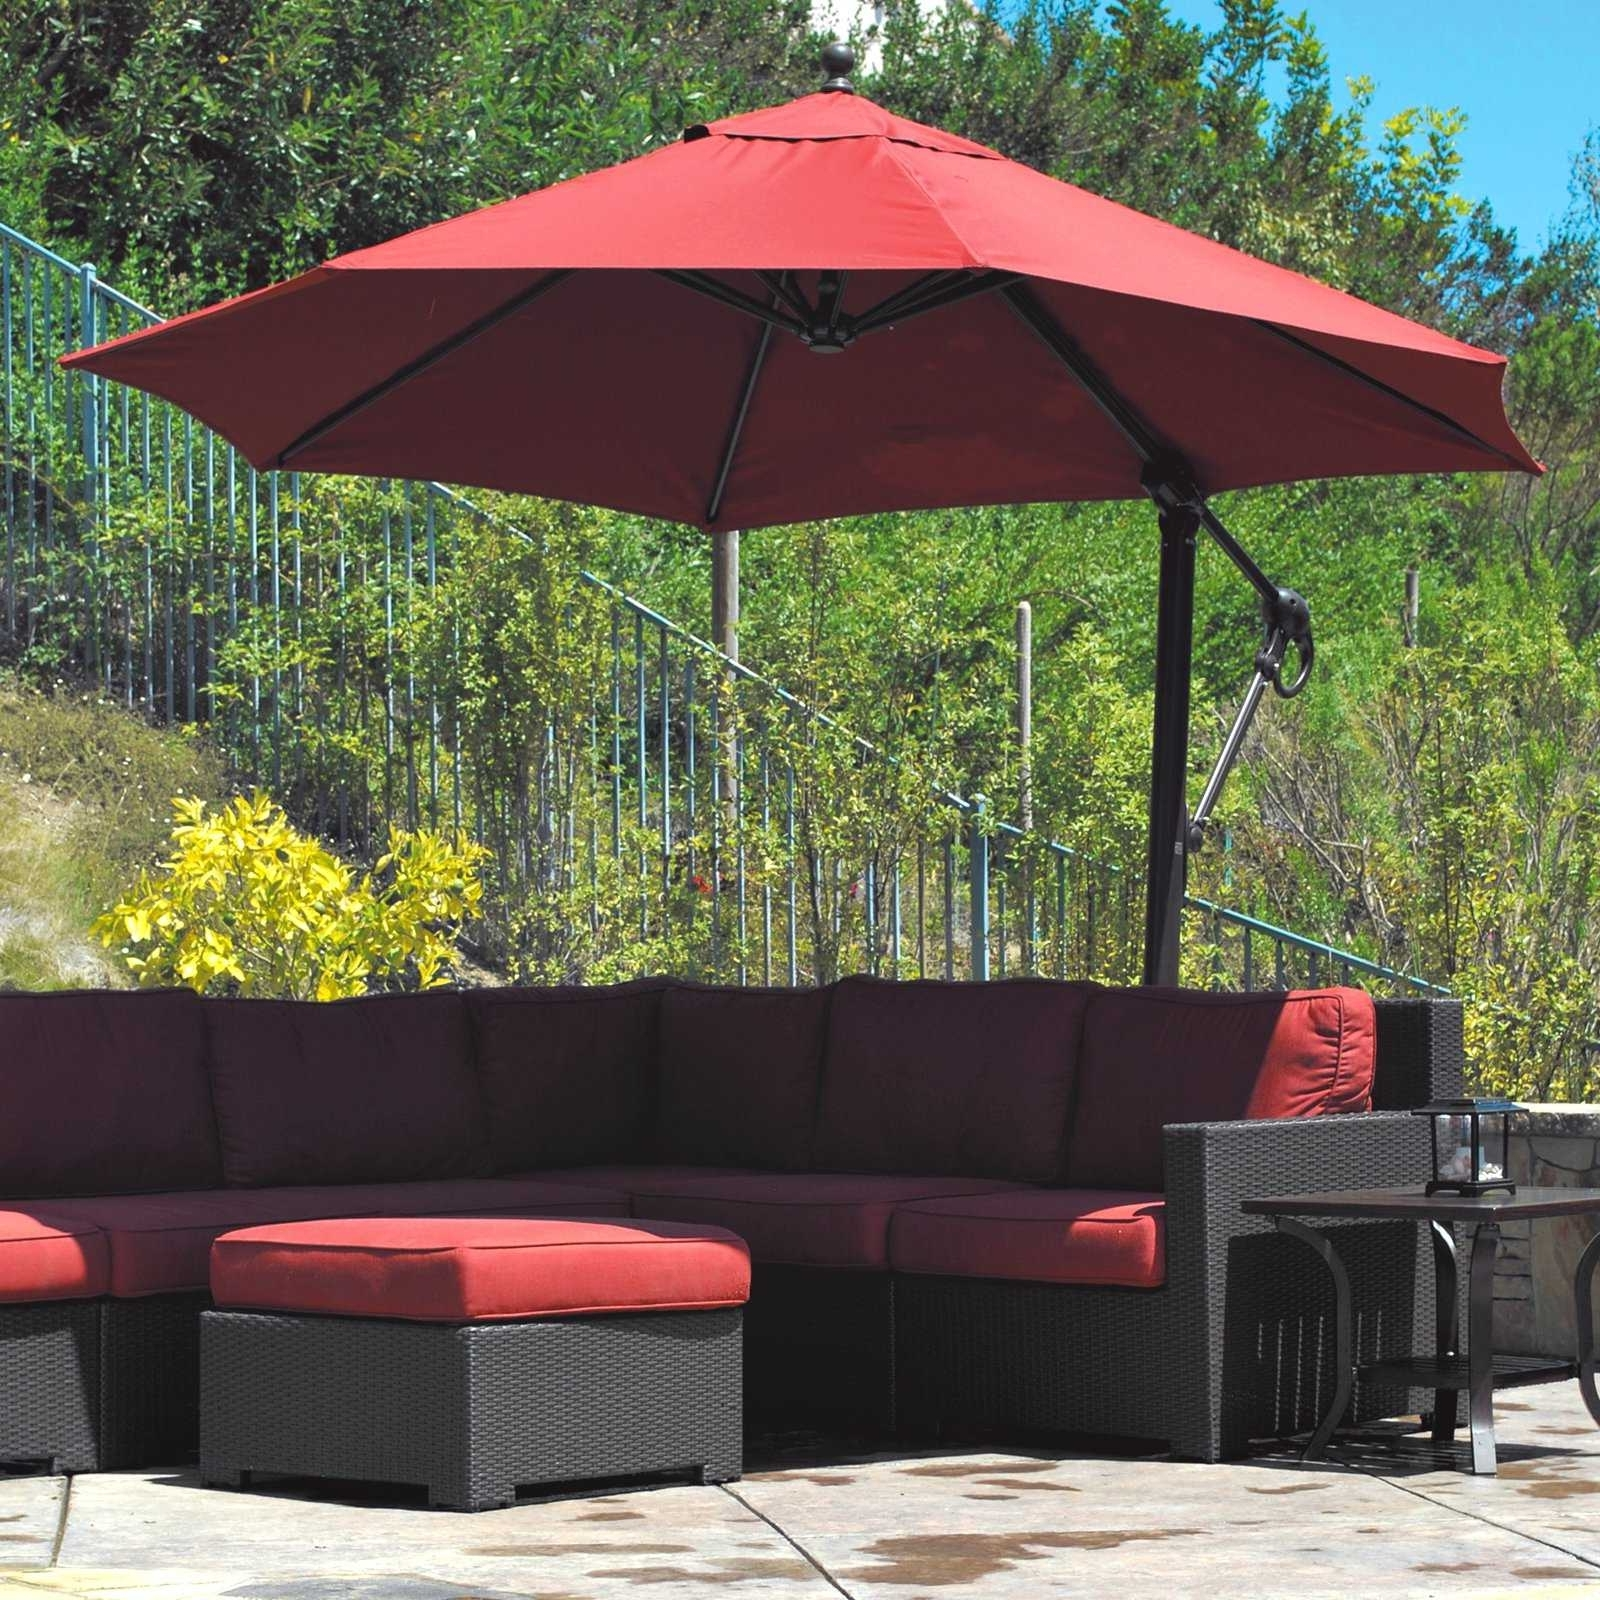 Big Lots Patio Umbrellas Intended For Widely Used Outstanding Patio Umbrellas Ideas Trends And At Big Lots With (View 20 of 20)